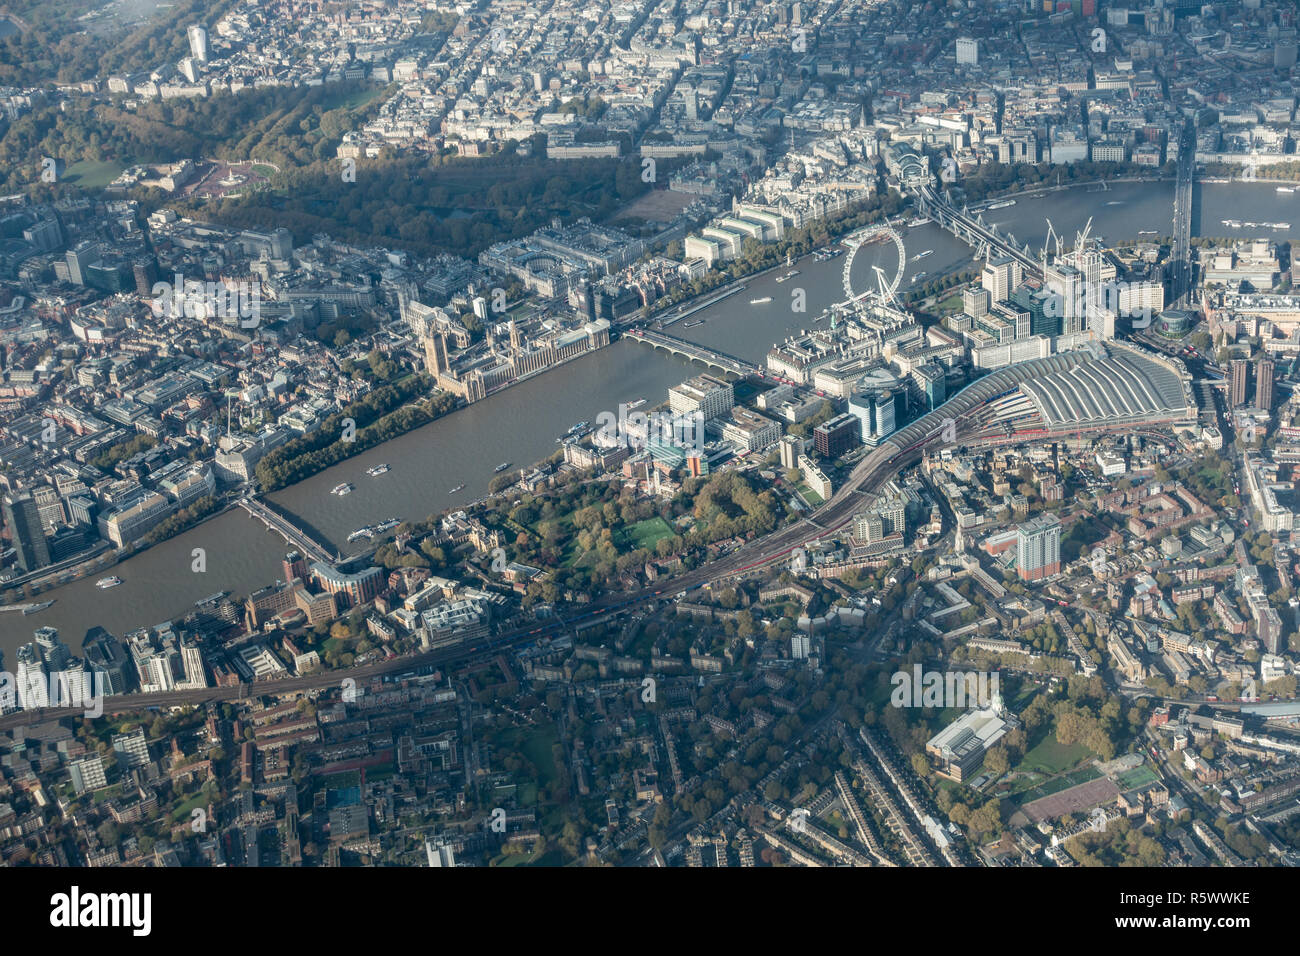 London aerial shot showing key tourist attractions and places including Buckingham Palace, Nelson's column and the Houses of Parliament Stock Photo